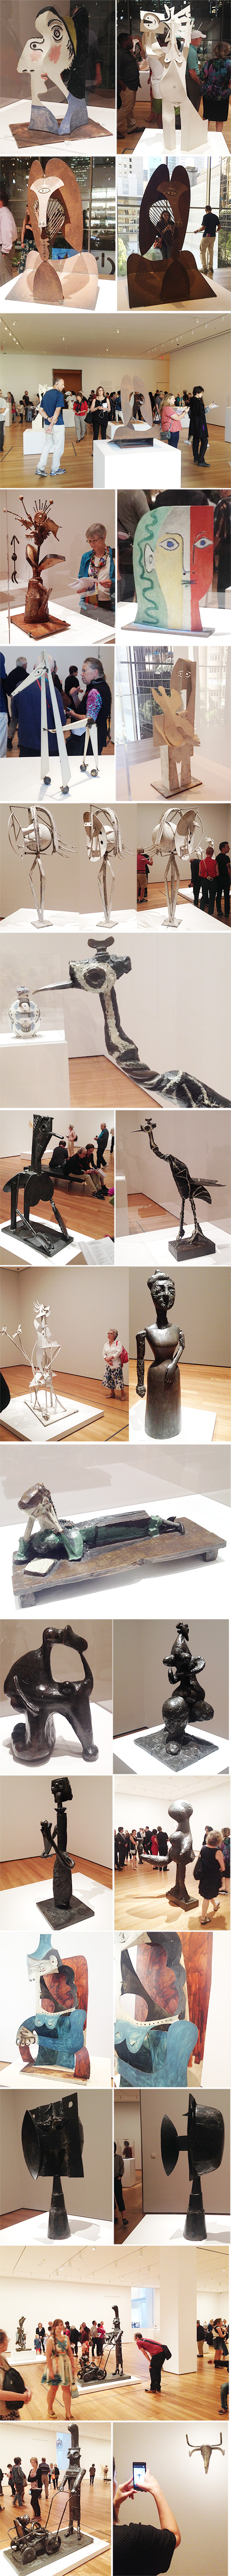 from the Balzer Designs Blog: Picasso Sculpture at MoMA